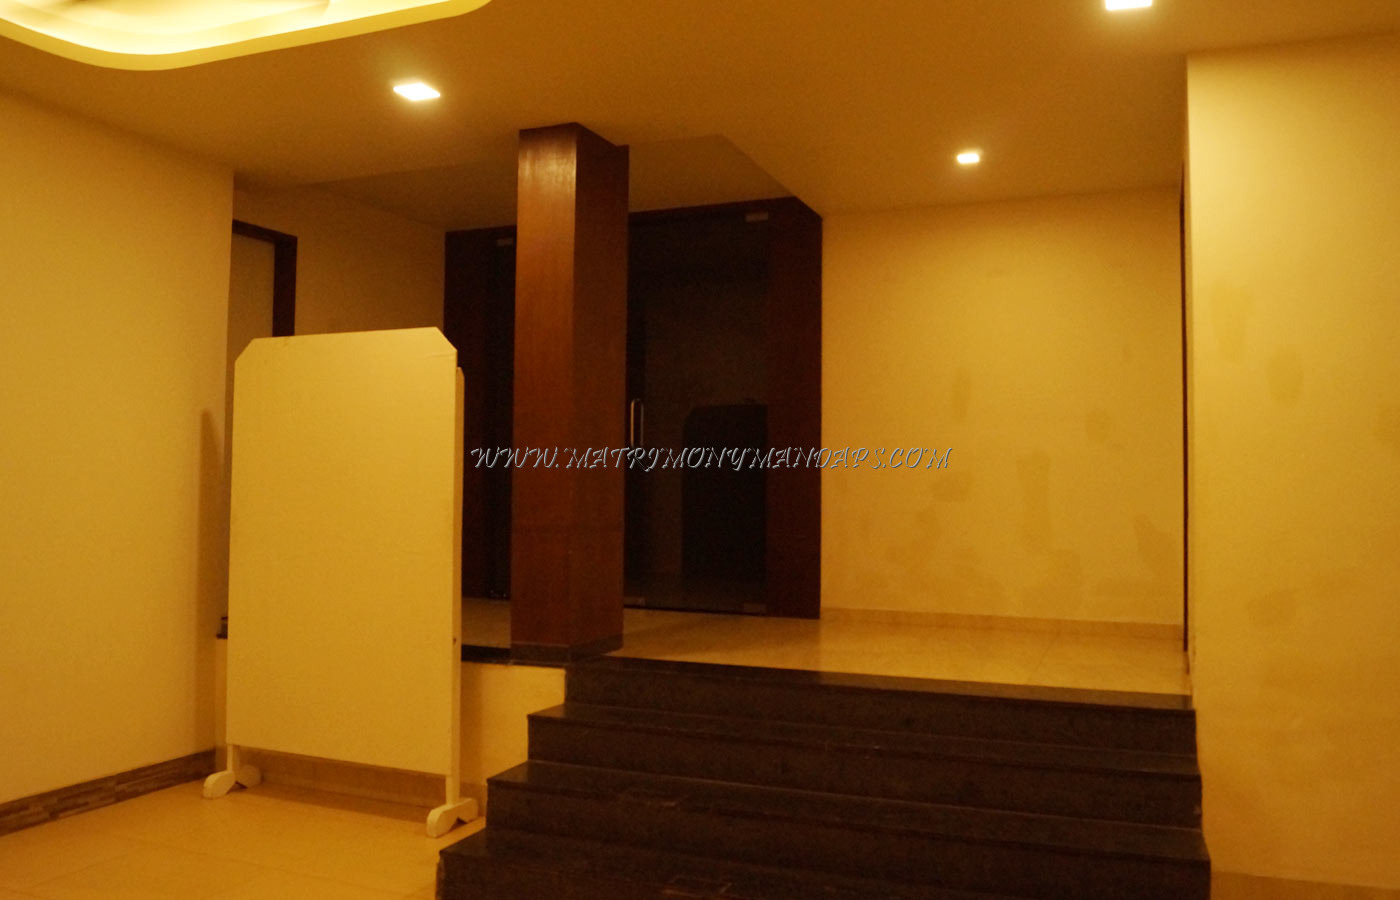 Find the availability of the Uday Samudra Leisure Beh Hotel - Bay (A/C) in Kovalam, Trivandrum and avail special offers